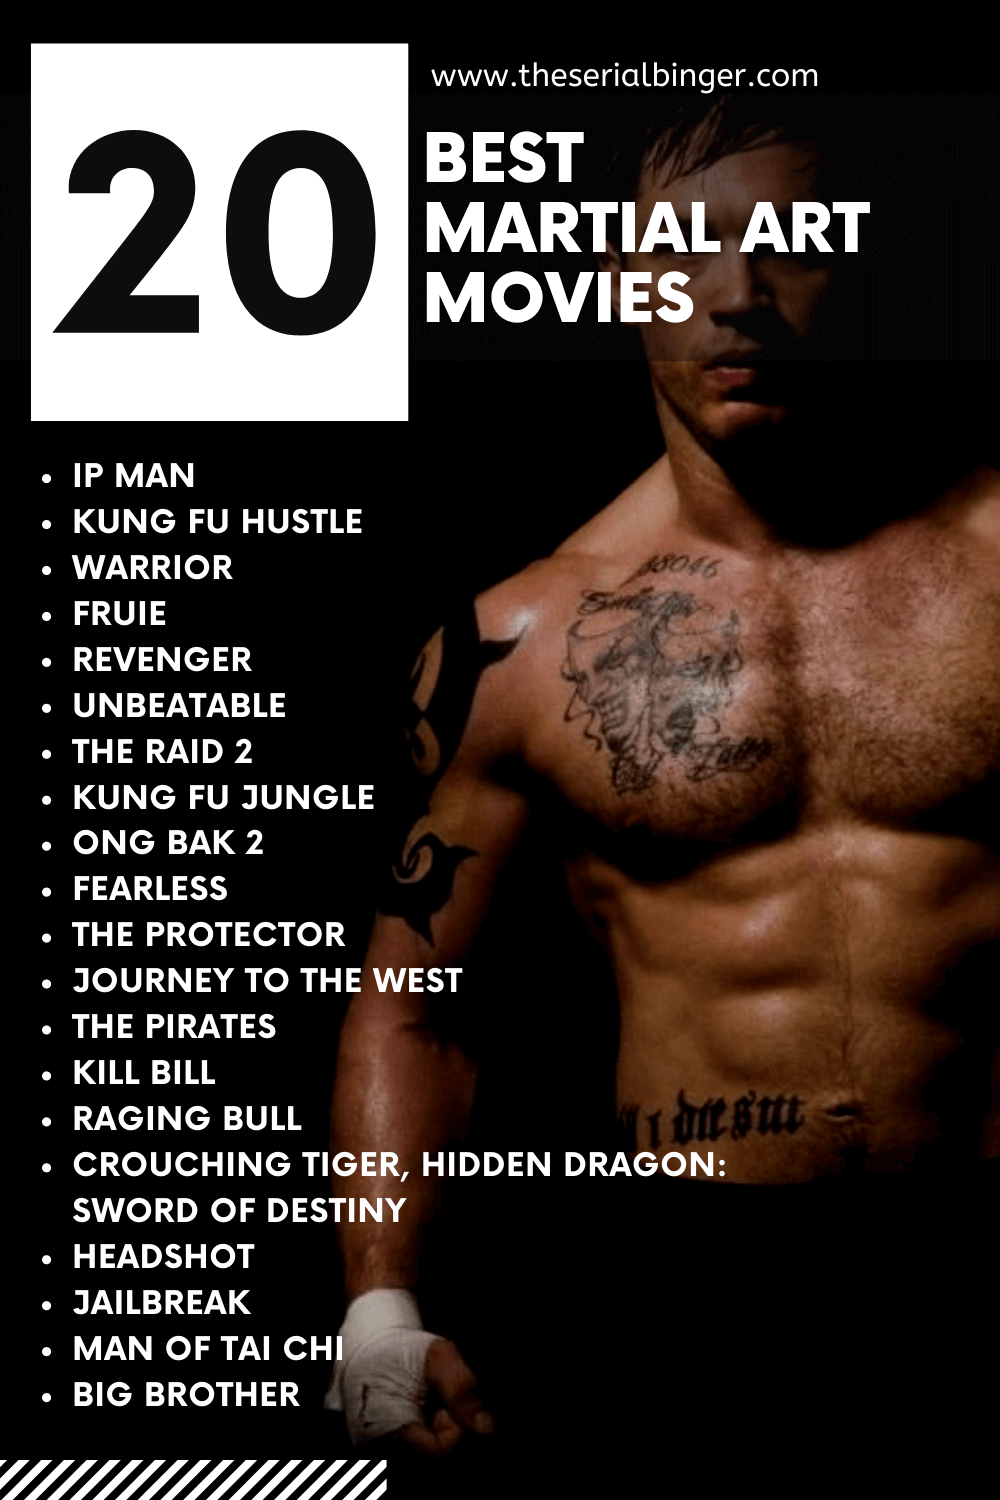 infographic describing 20 best martial art movies of all time